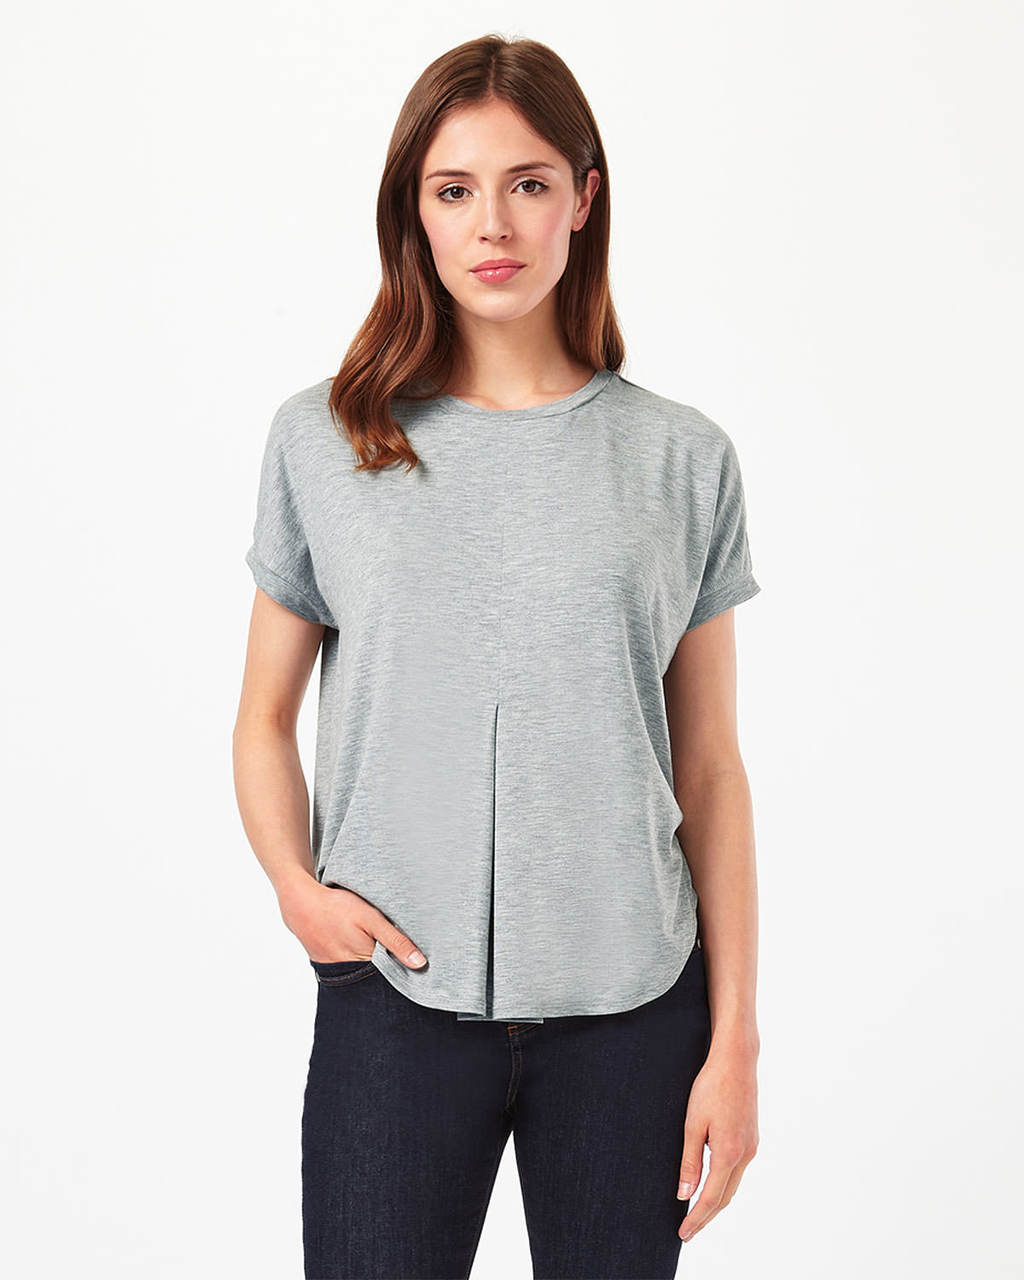 Circle Hem Top - pattern: plain; style: t-shirt; predominant colour: light grey; occasions: casual; length: standard; fibres: polyester/polyamide - stretch; fit: body skimming; neckline: crew; sleeve length: short sleeve; sleeve style: standard; pattern type: fabric; texture group: jersey - stretchy/drapey; season: s/s 2016; wardrobe: basic